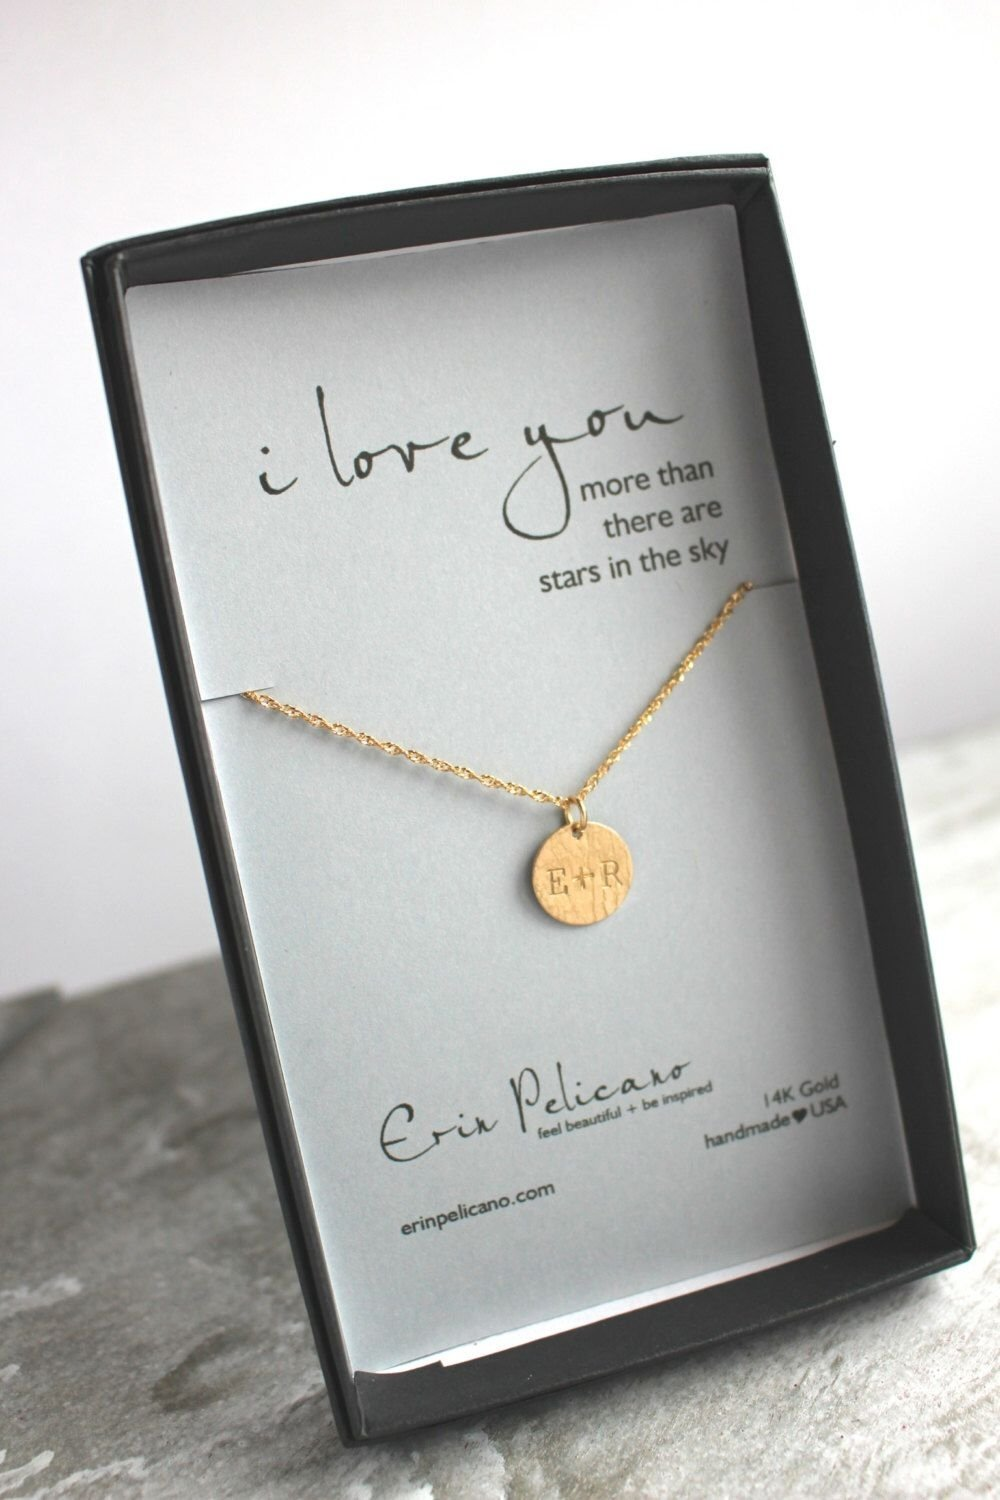 10 Attractive Personalized Gift Ideas For Her valentines day personalized necklace anniversary gift for wife 2 2020